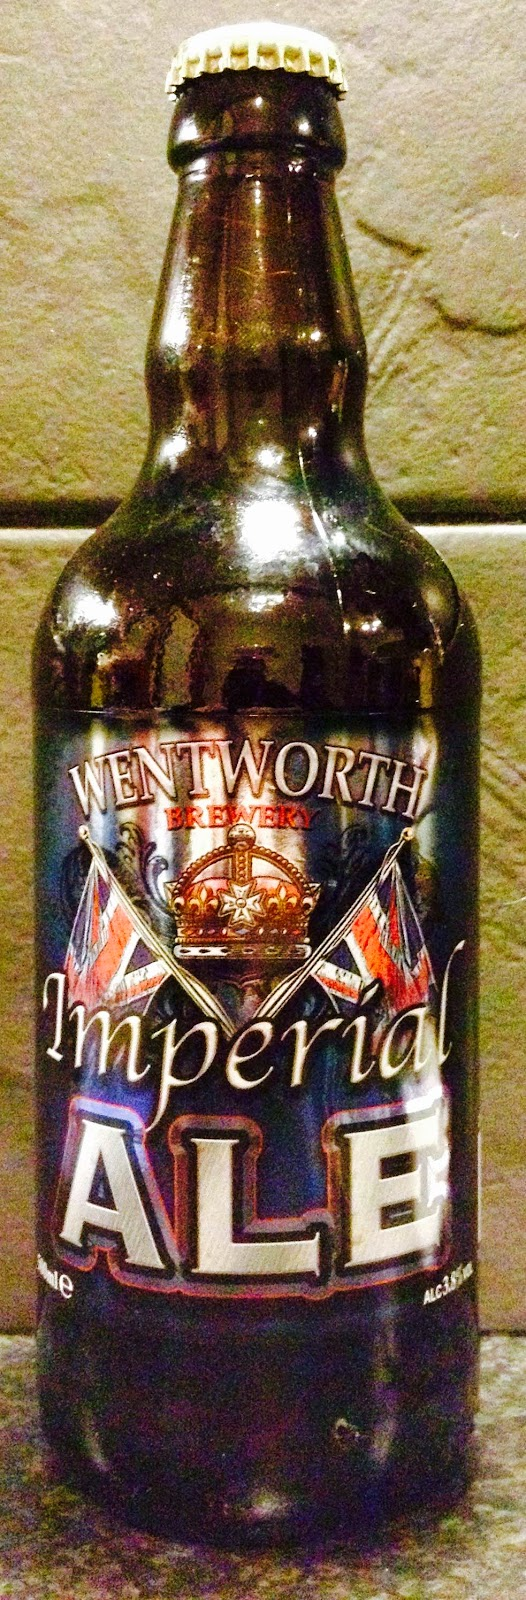 Imperial Ale (Wentworth Brewery)